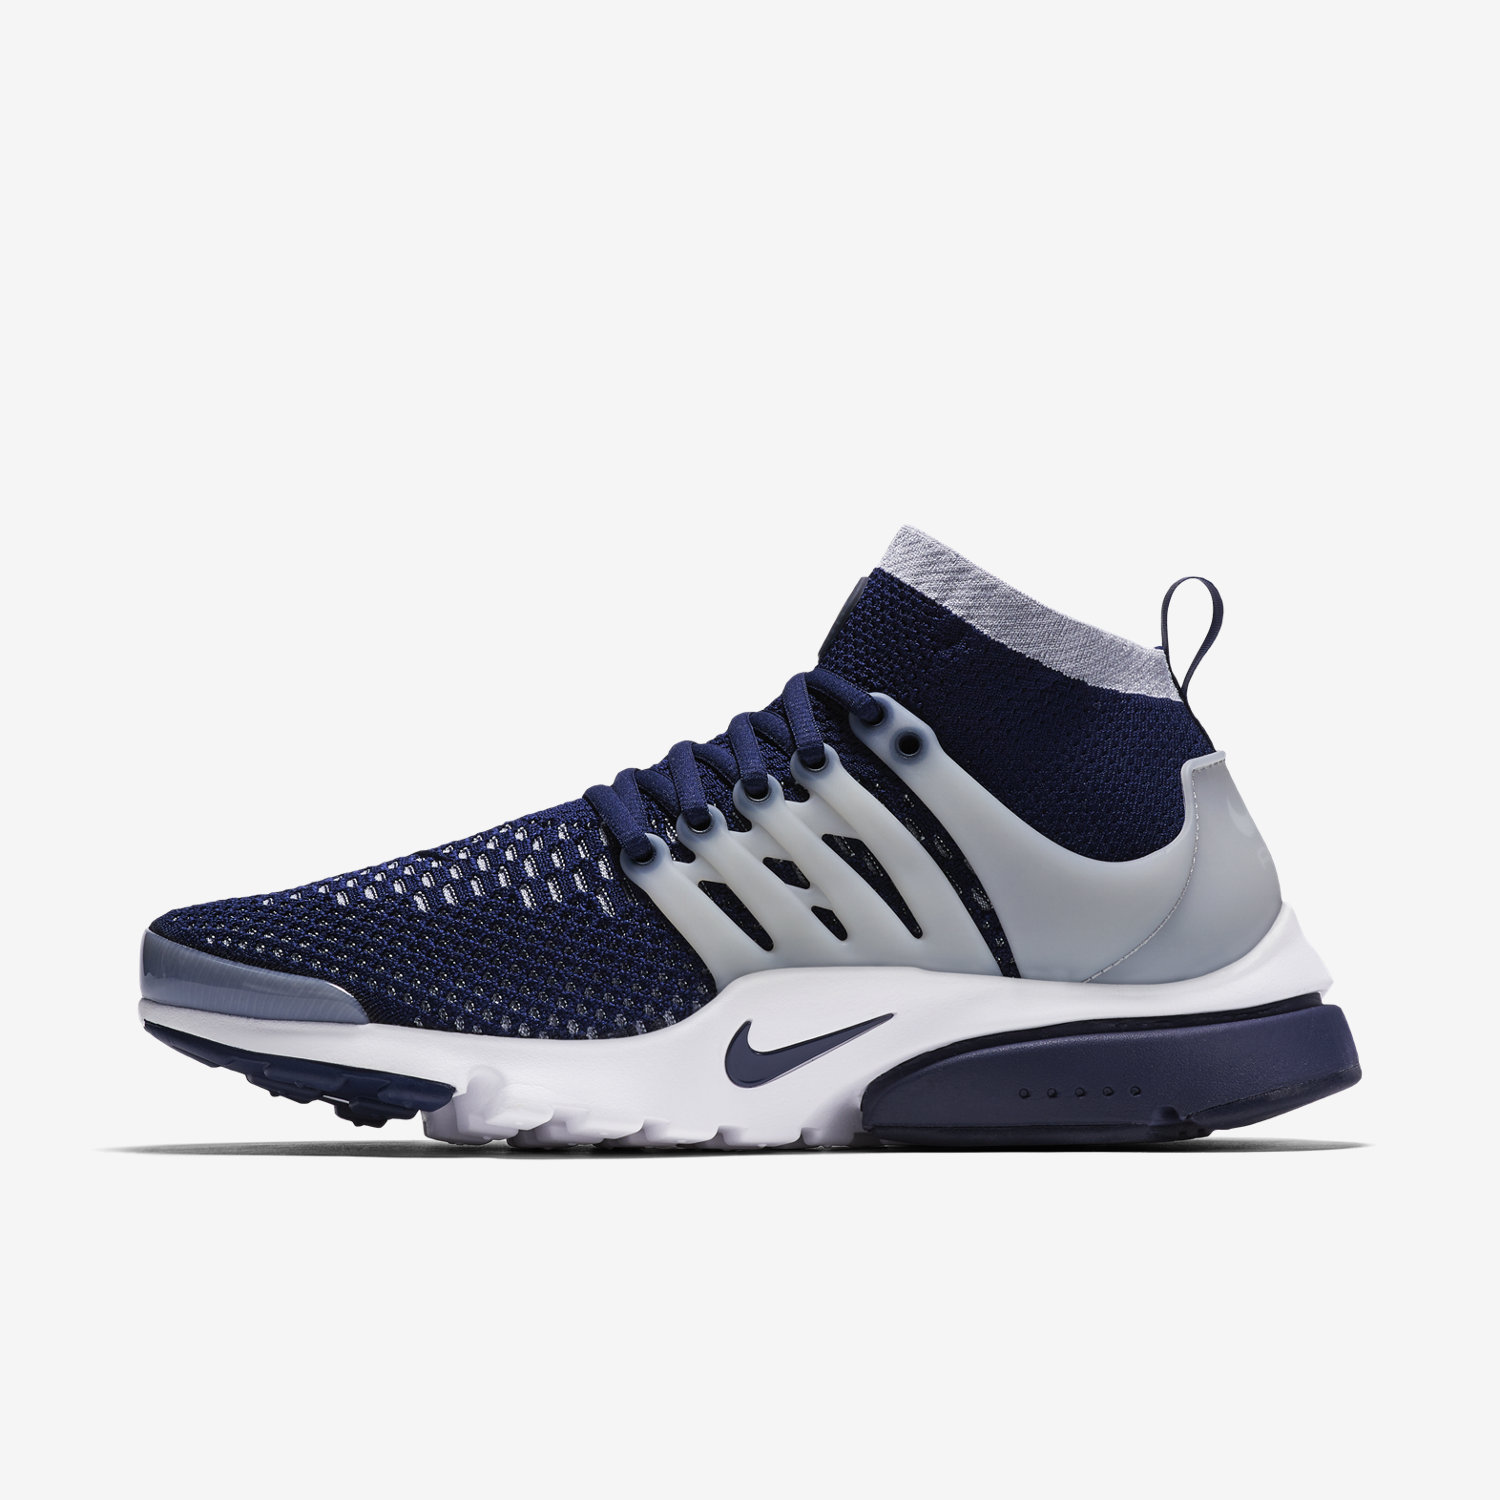 Nike Air Presto Flyknit Ultra Imported Sports Shoes